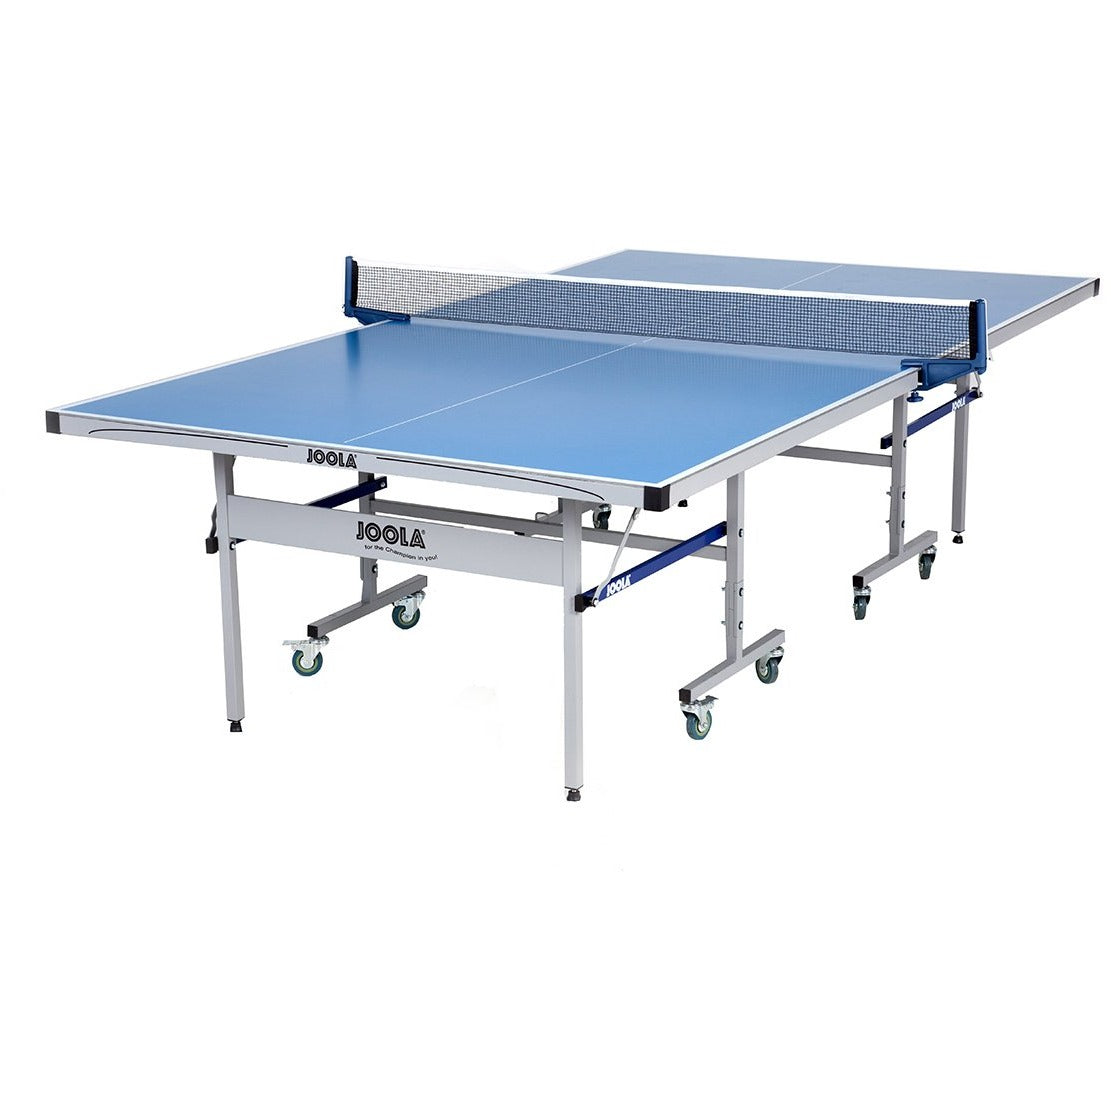 ... JOOLA Rapid Play Indoor/Outdoor Ping Pong Table with Weatherproof Net Set - pingponggalore ...  sc 1 st  pingponggalore : ping pong table set - pezcame.com